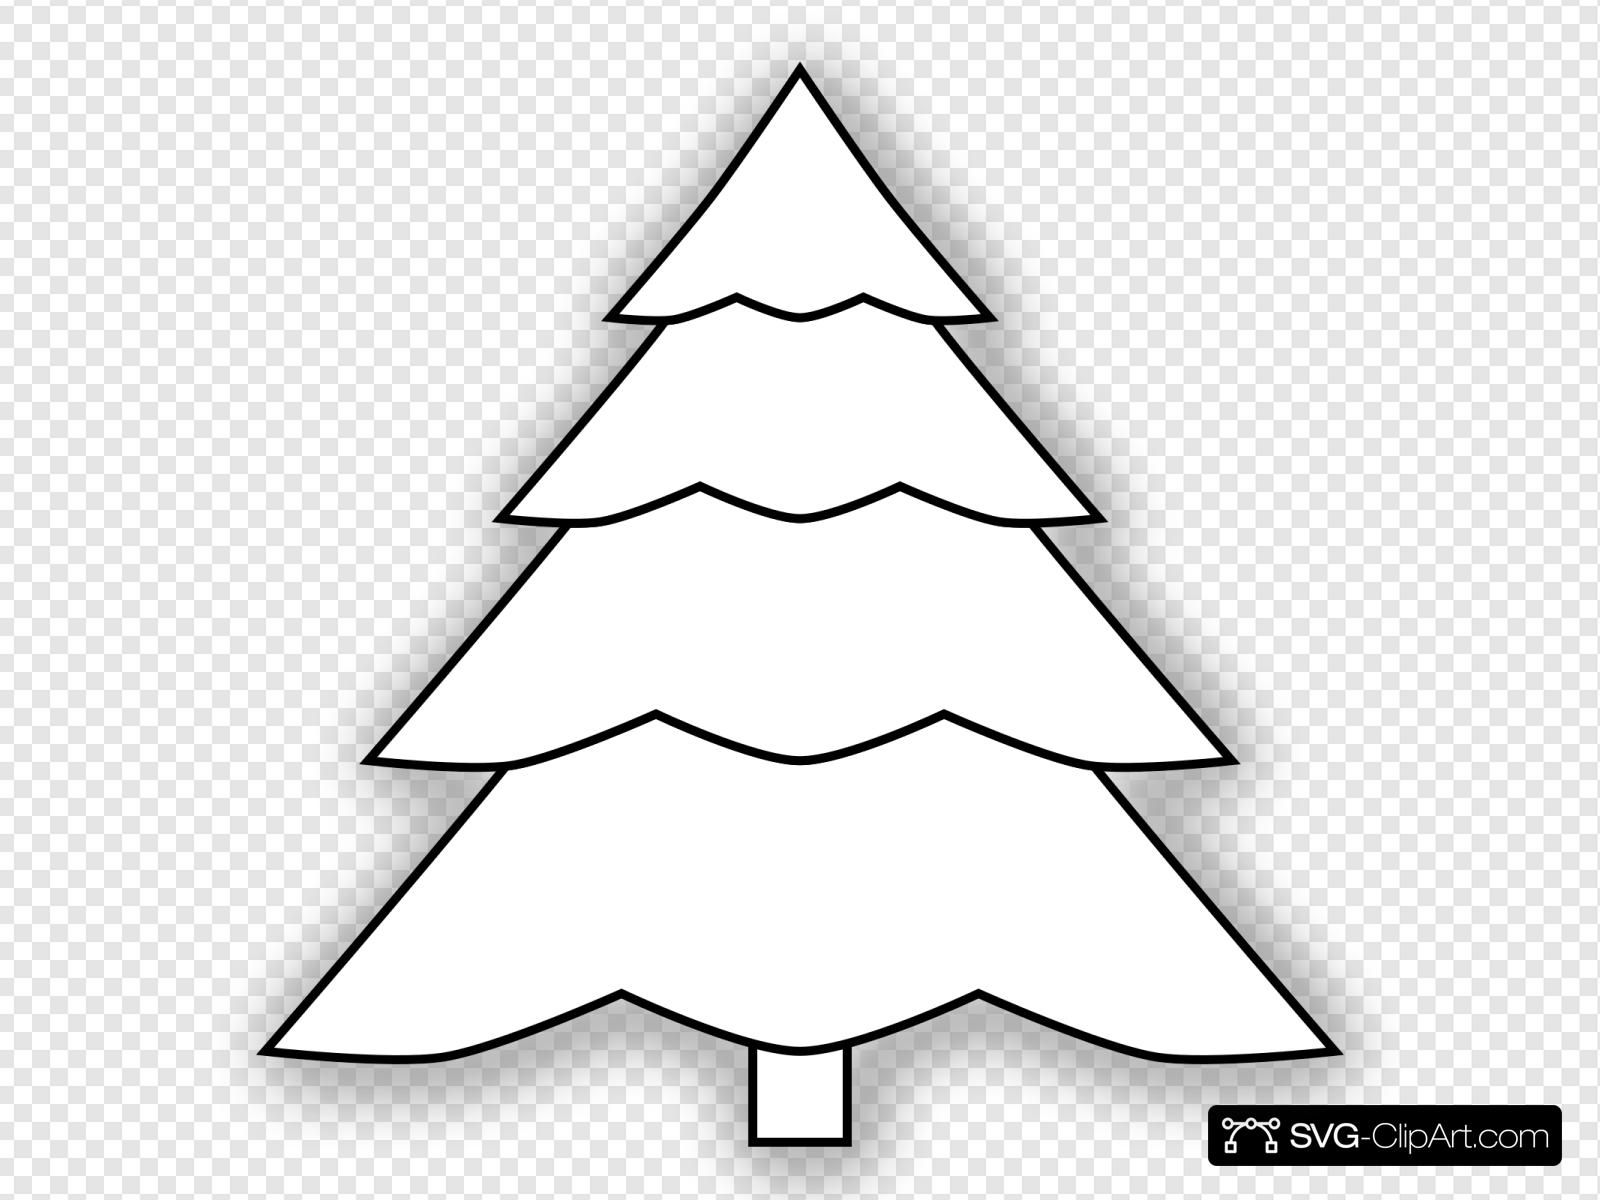 Christmas Tree Outline.Christmas Tree Outline Clip Art Icon And Svg Svg Clipart